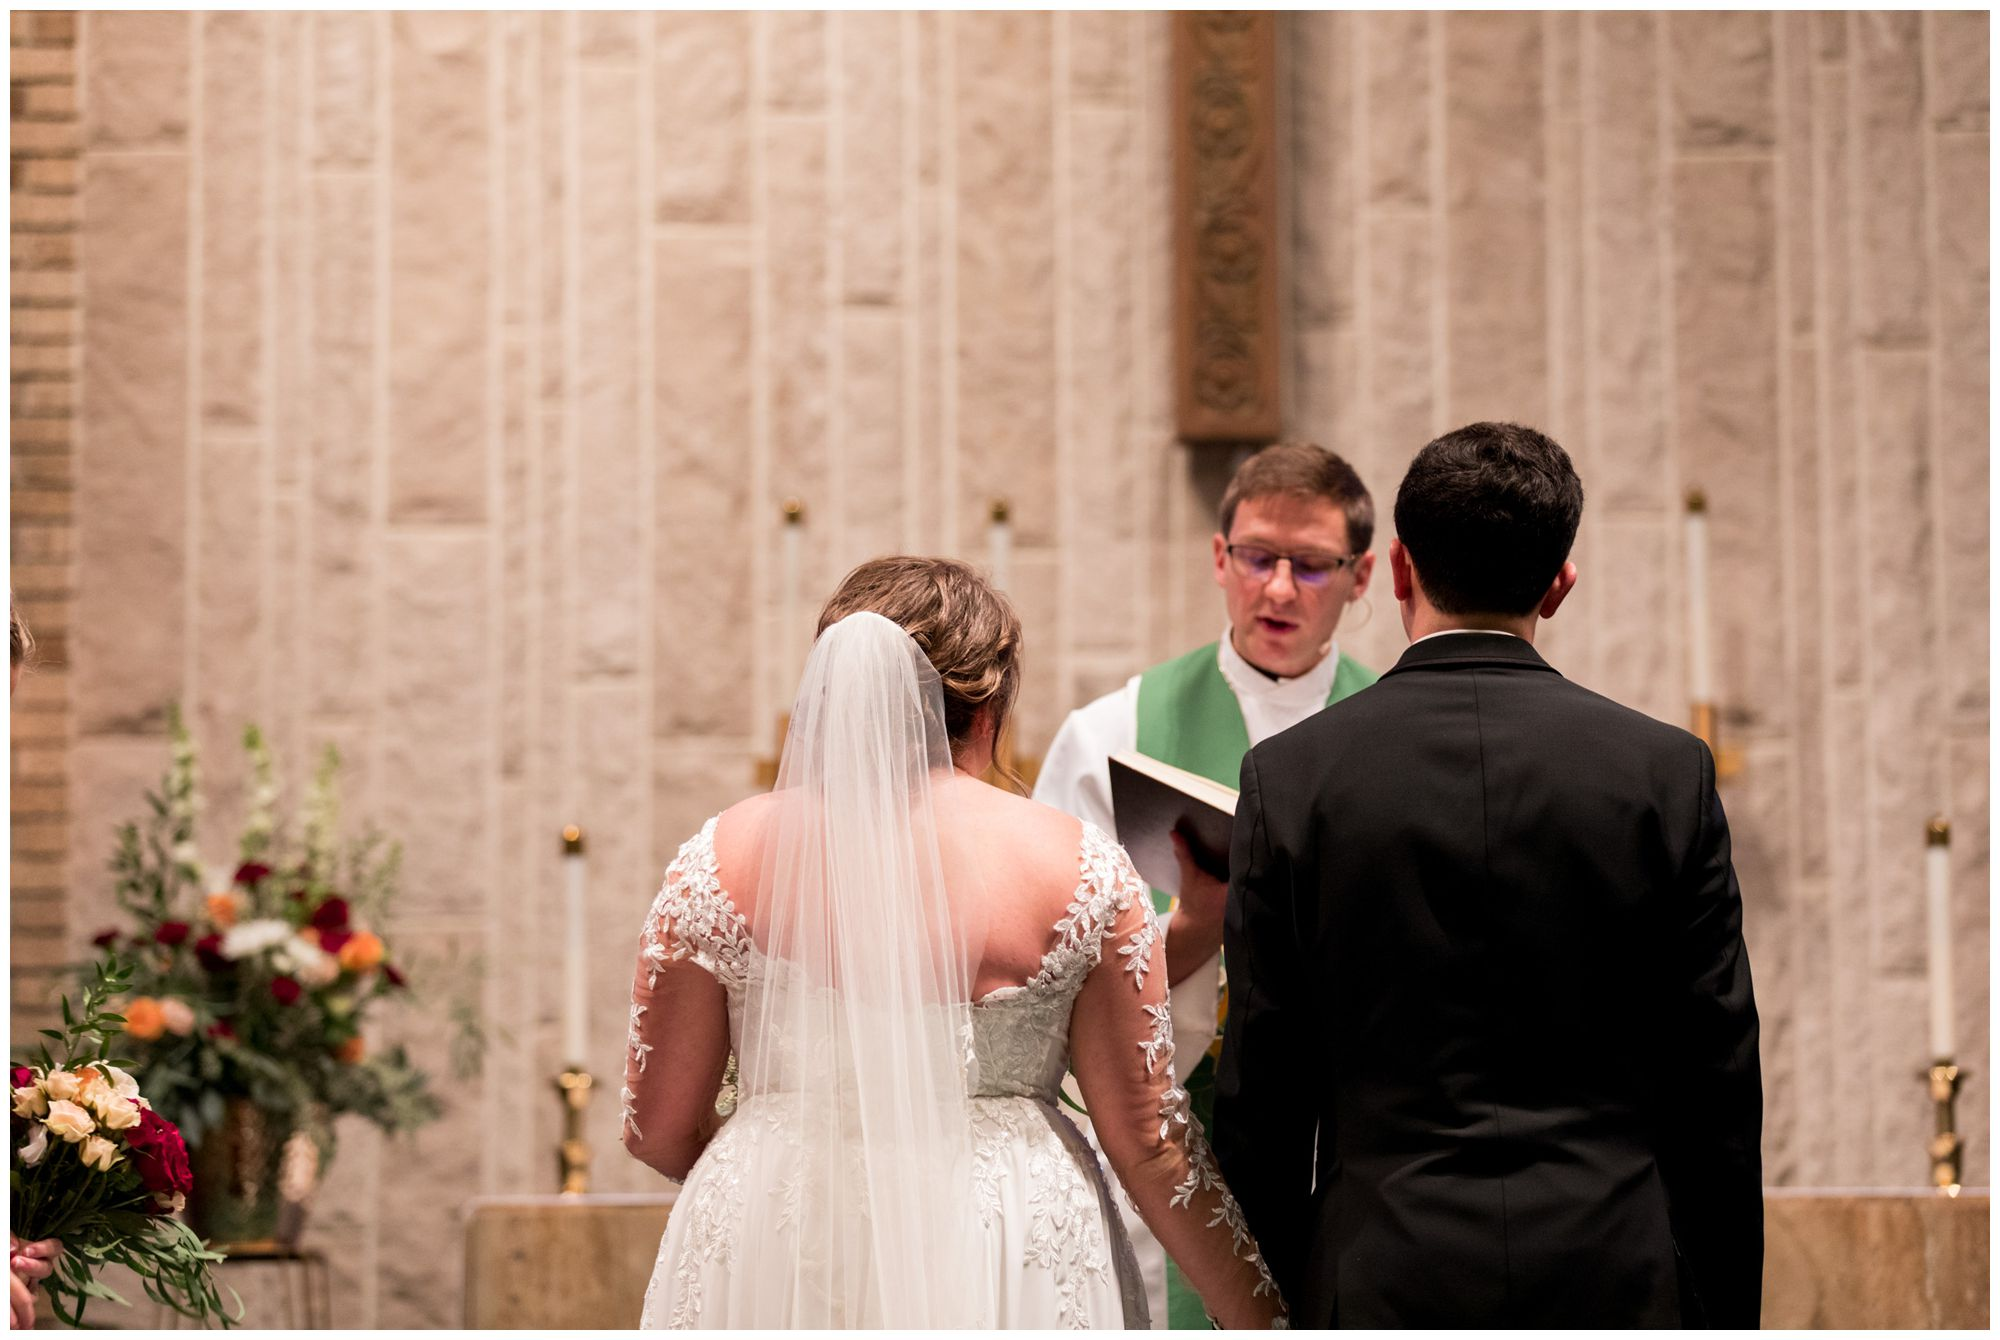 bride and groom during wedding ceremony at Zion Lutheran Church in Decatur, Indiana